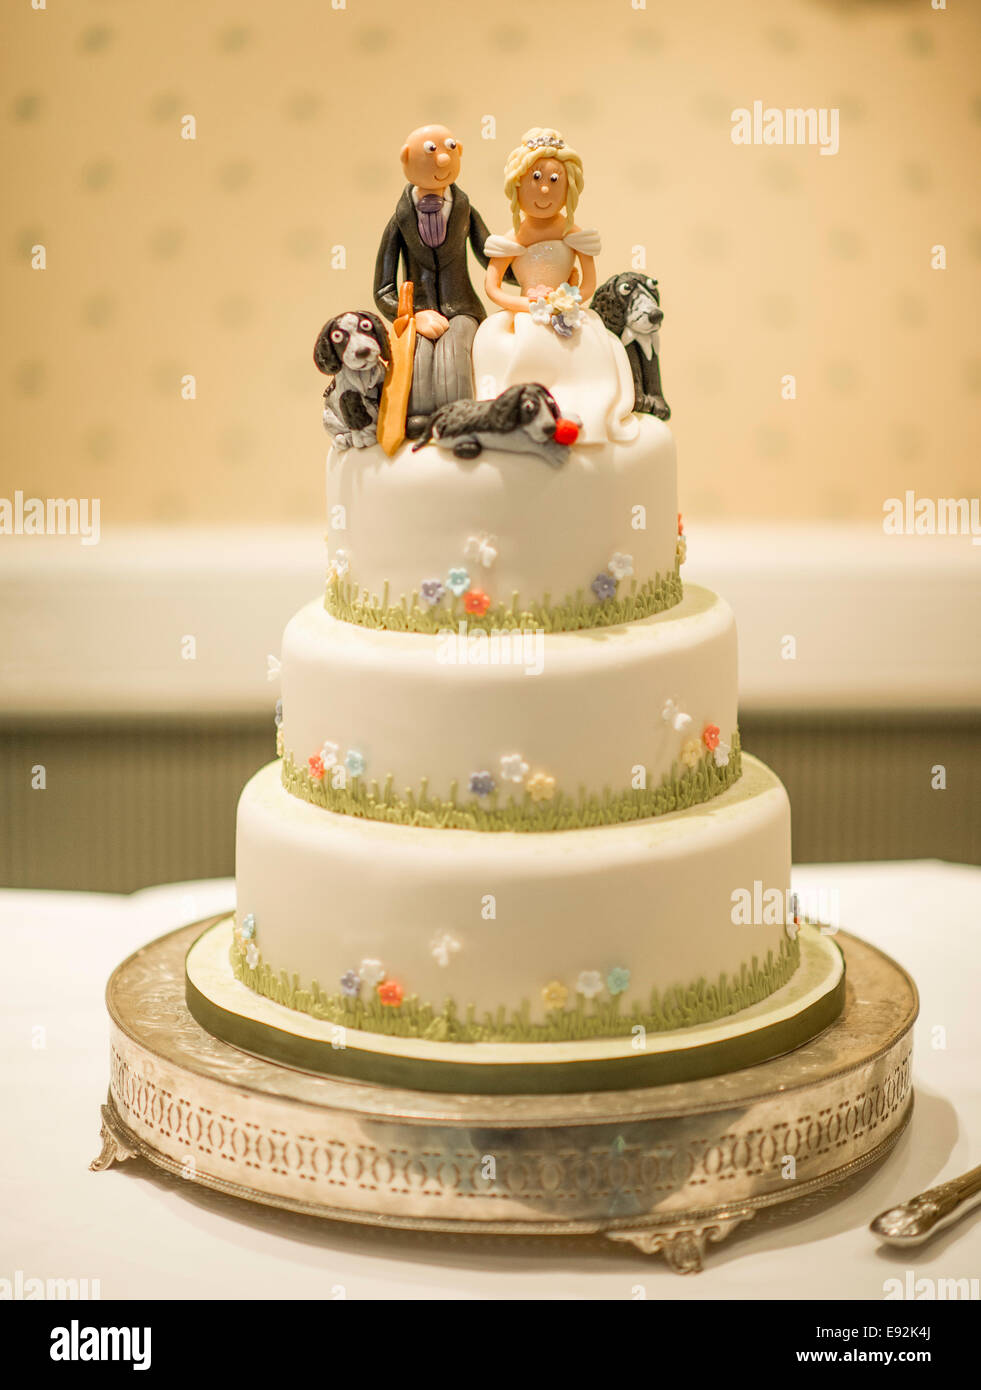 Cake For Dogs Stock Photos & Cake For Dogs Stock Images - Alamy